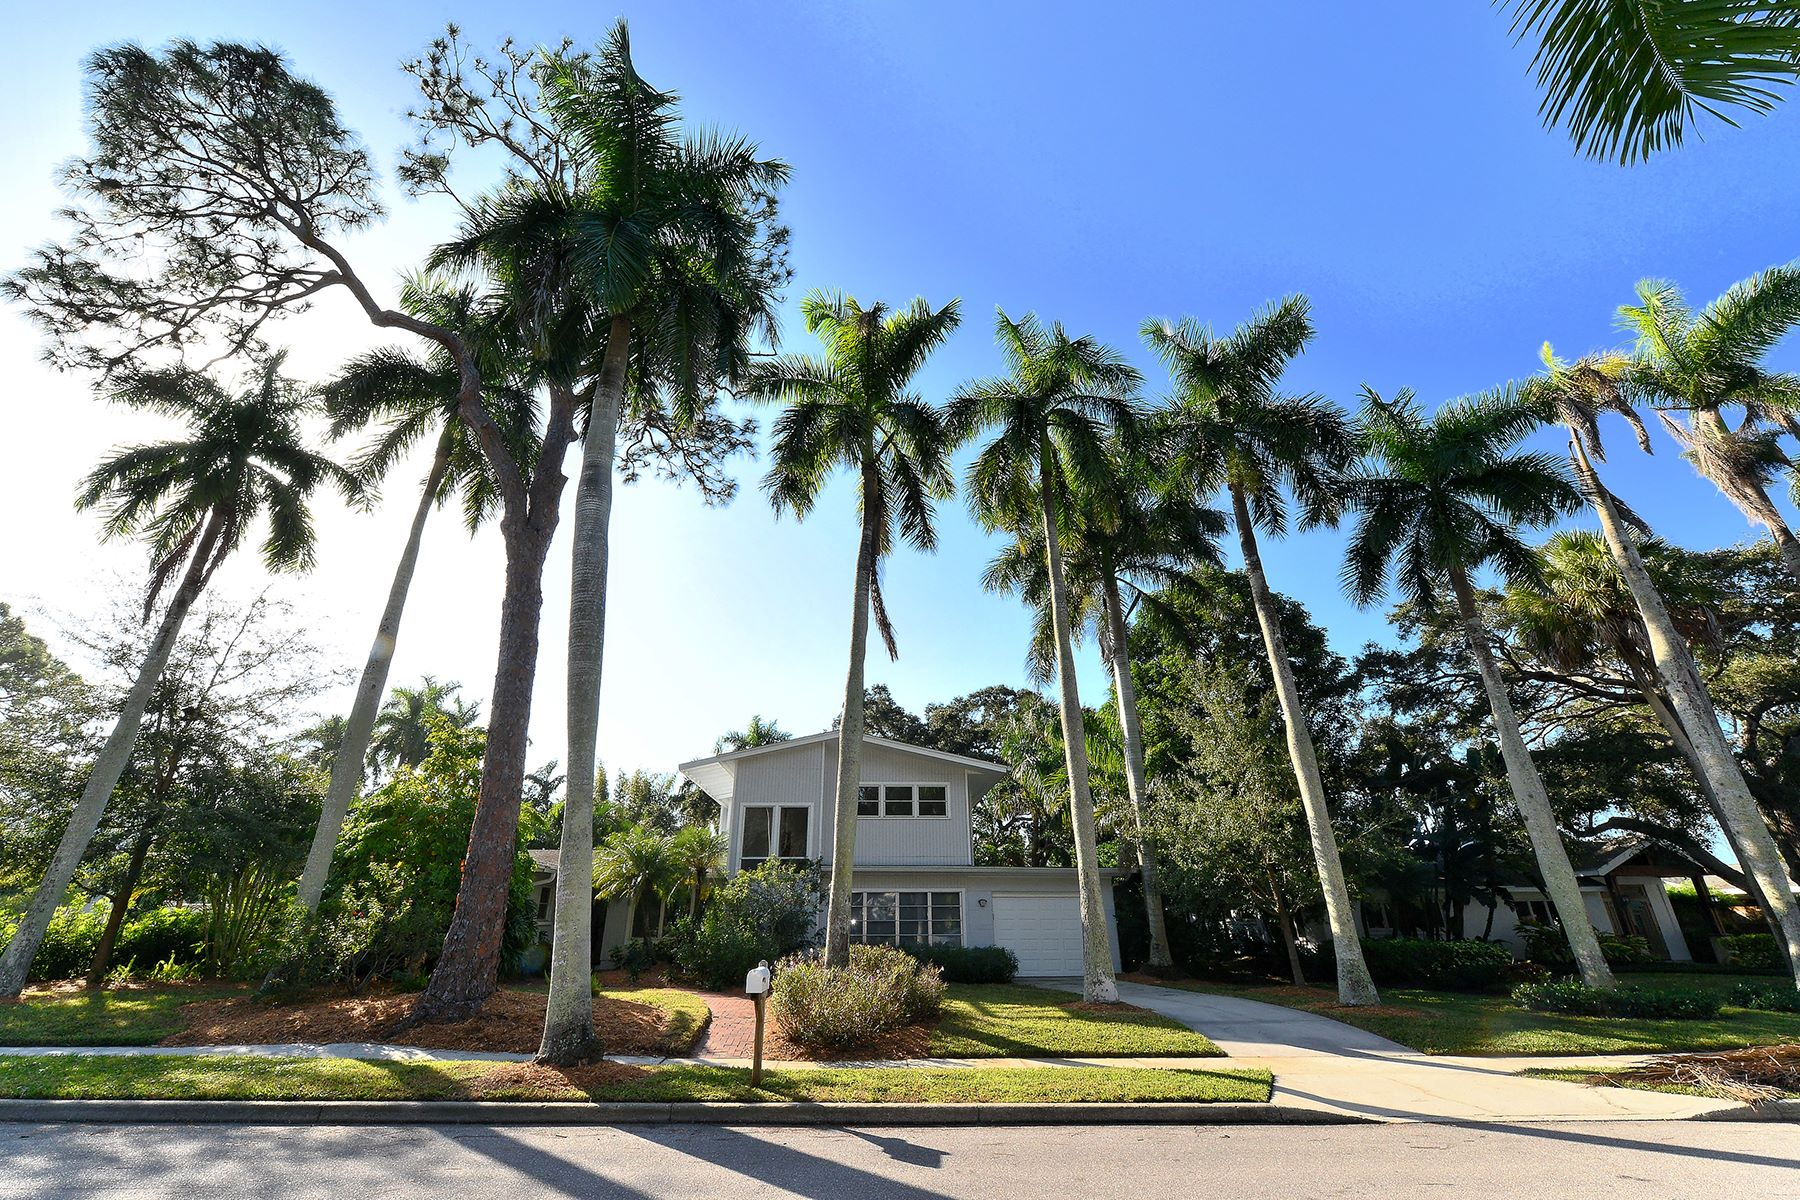 Single Family Home for Sale at INDIAN BEACH; SAPPHIRE SHORES 650 Indian Beach Ln Sarasota, Florida, 34234 United States